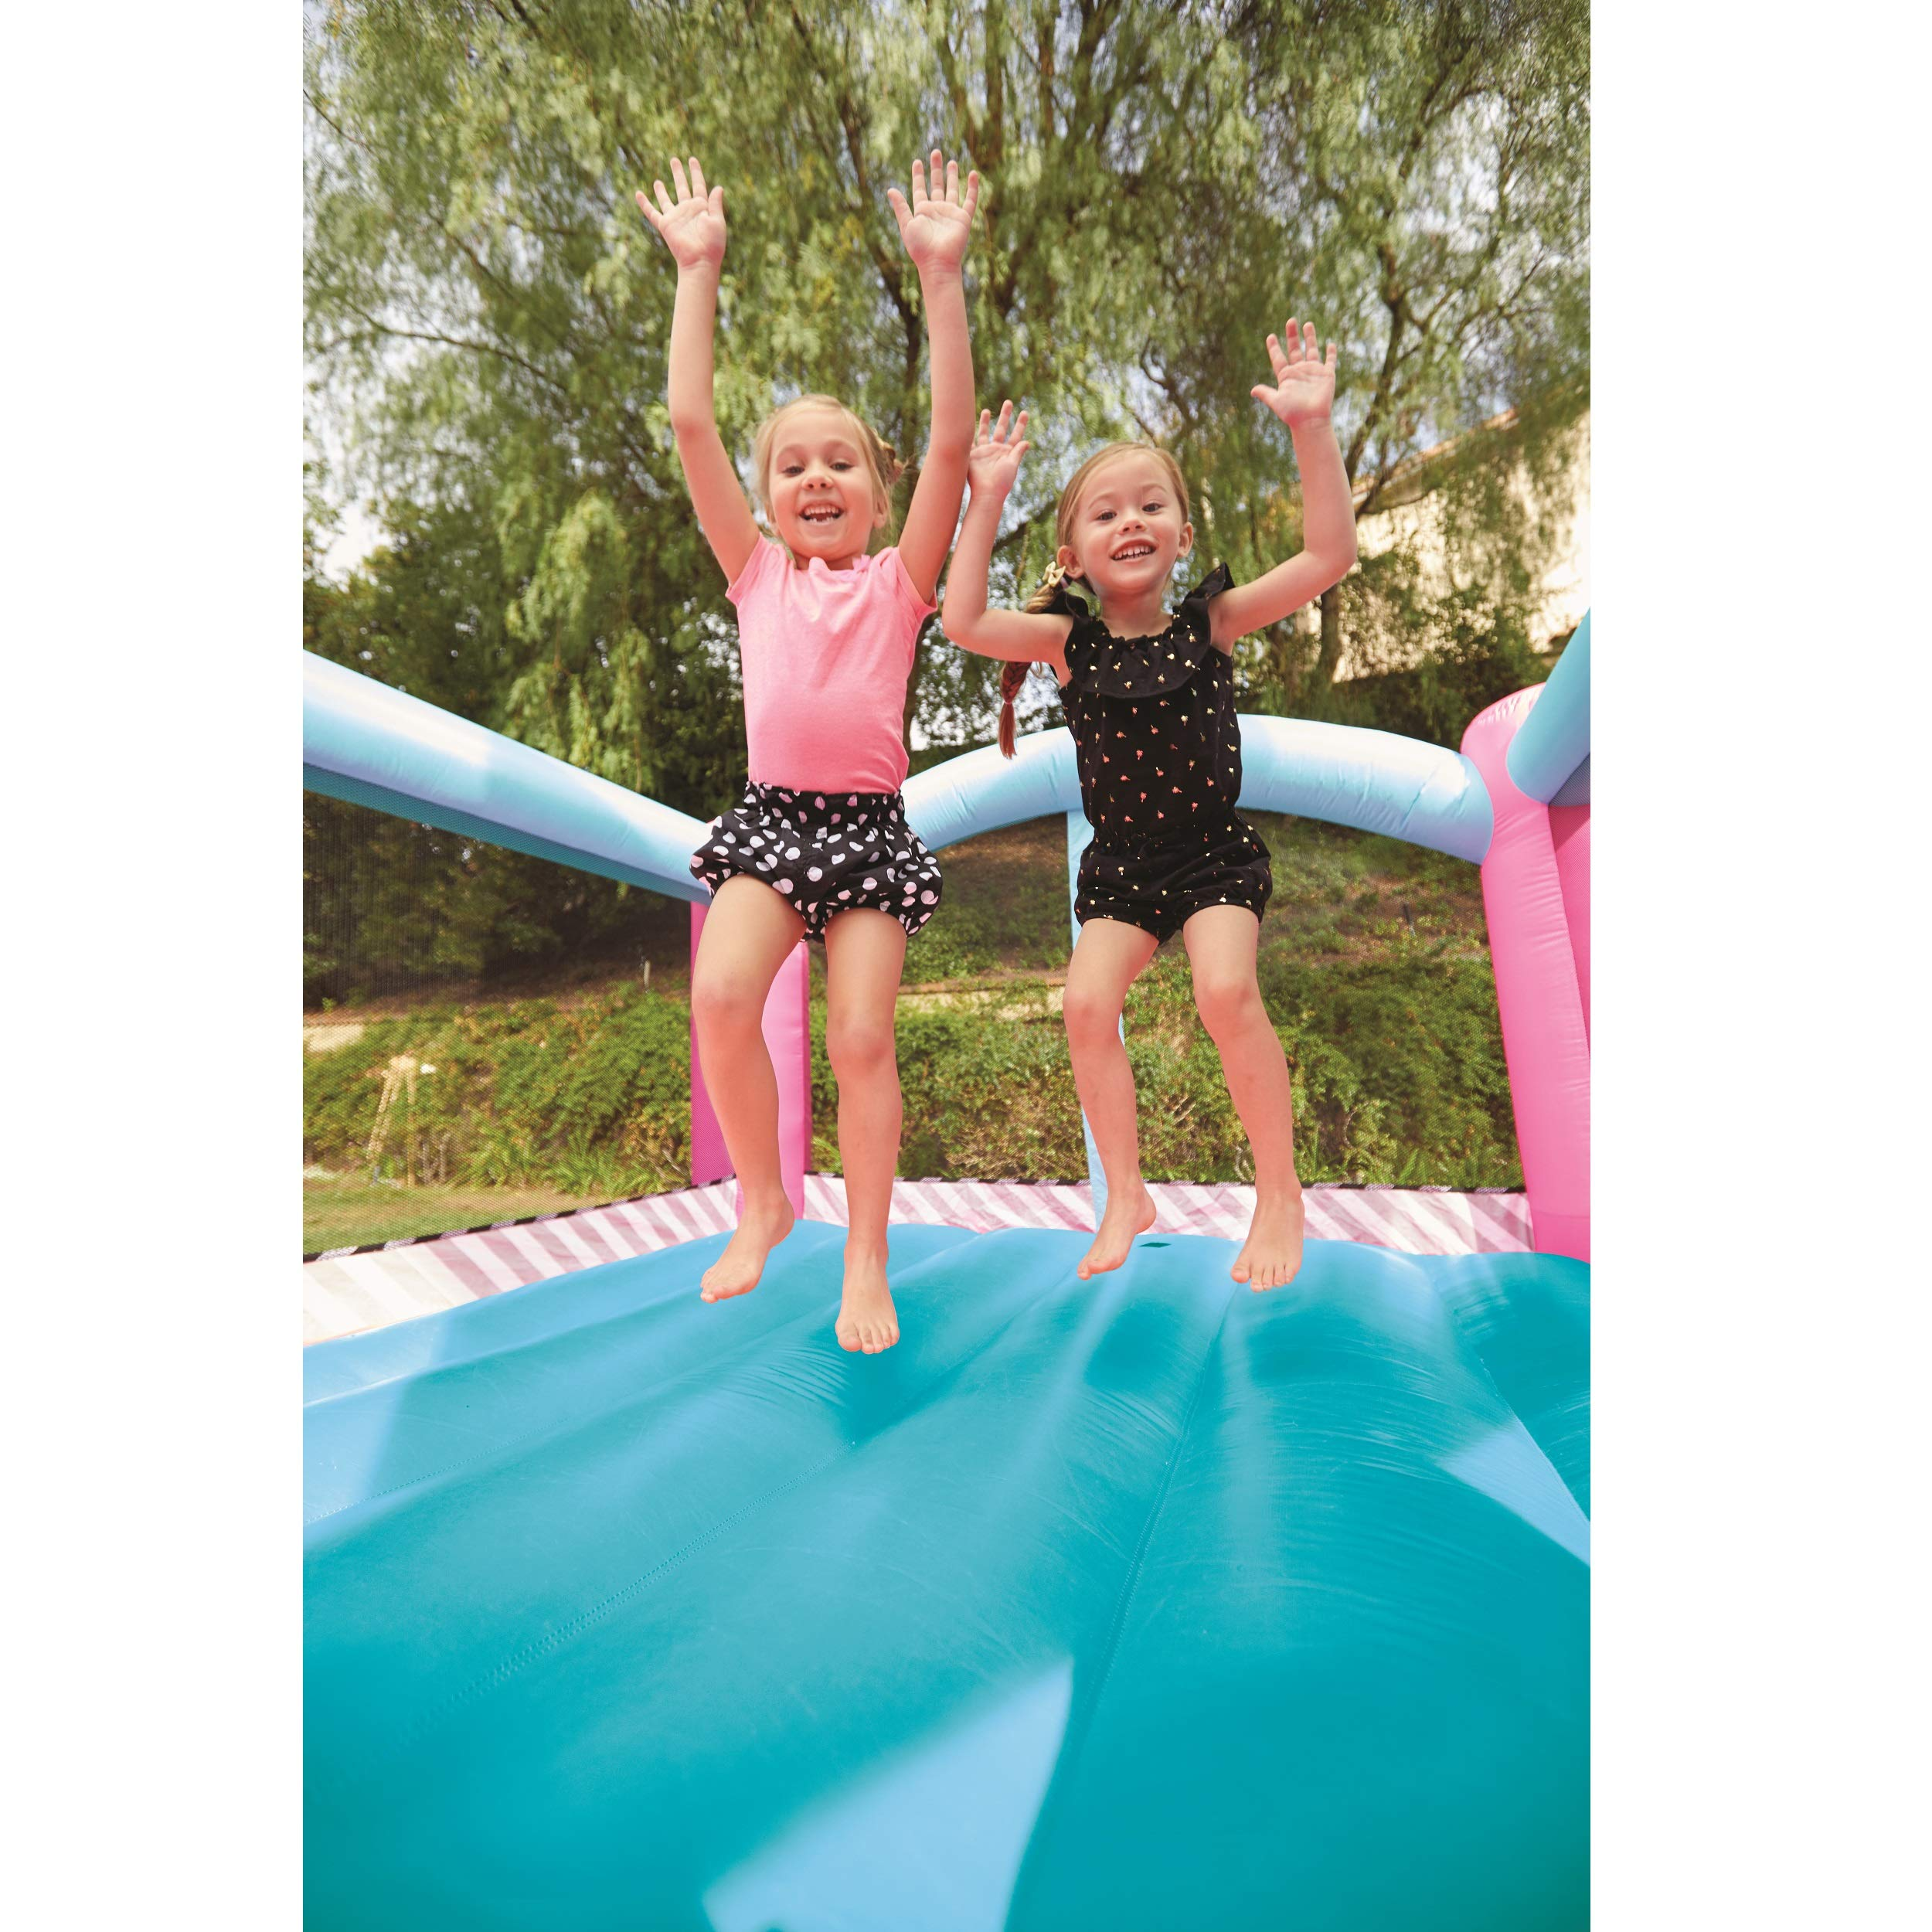 L.O.L. Surprise Jump 'n Slide Inflatable Bounce House with Blower by Little Tikes (Image #3)